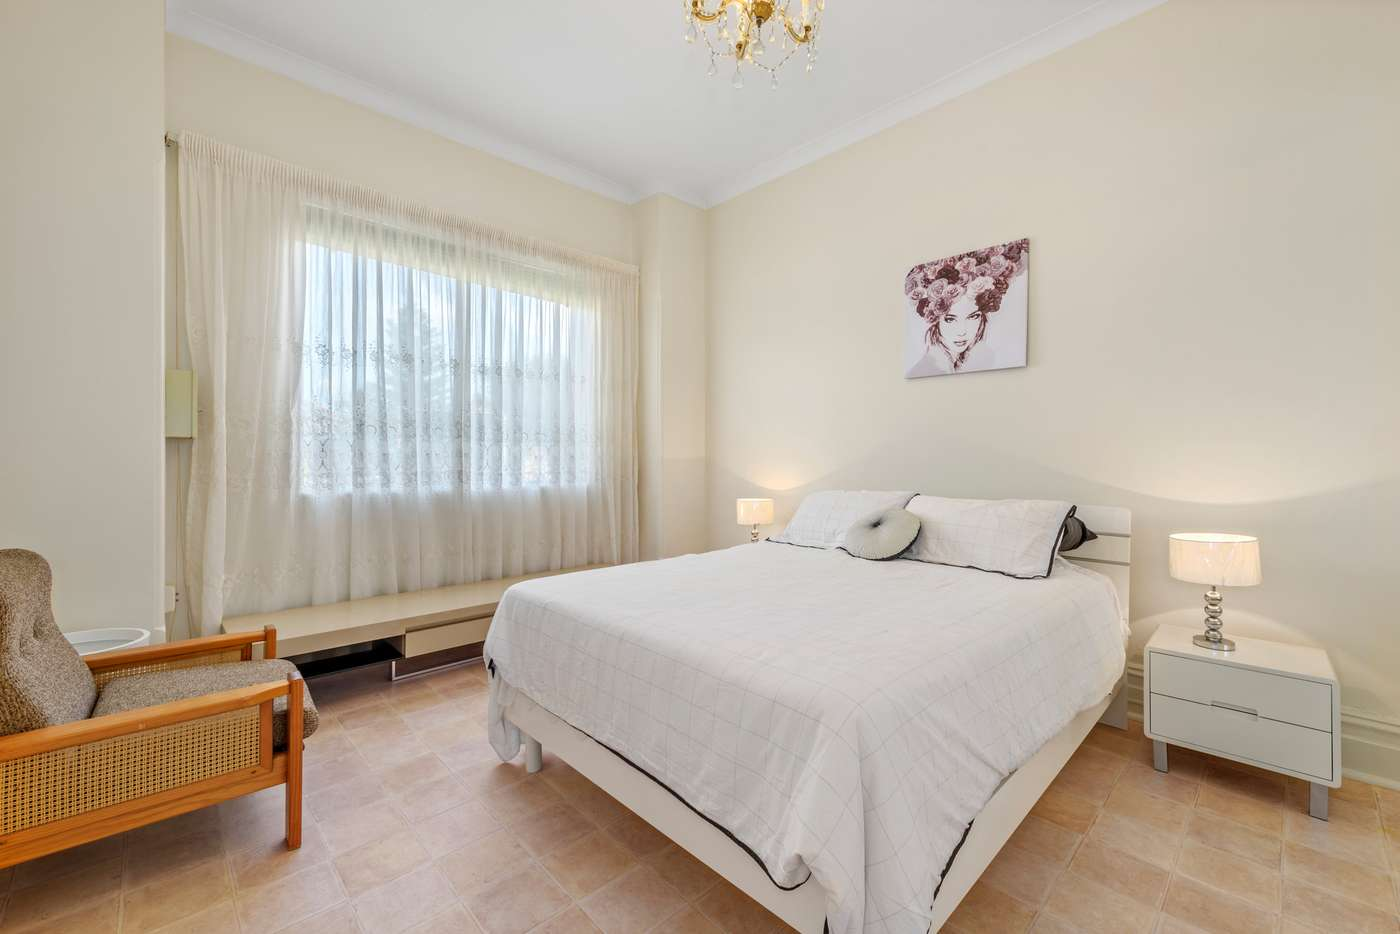 Fifth view of Homely house listing, 10 Hardy Street, Ashfield NSW 2131